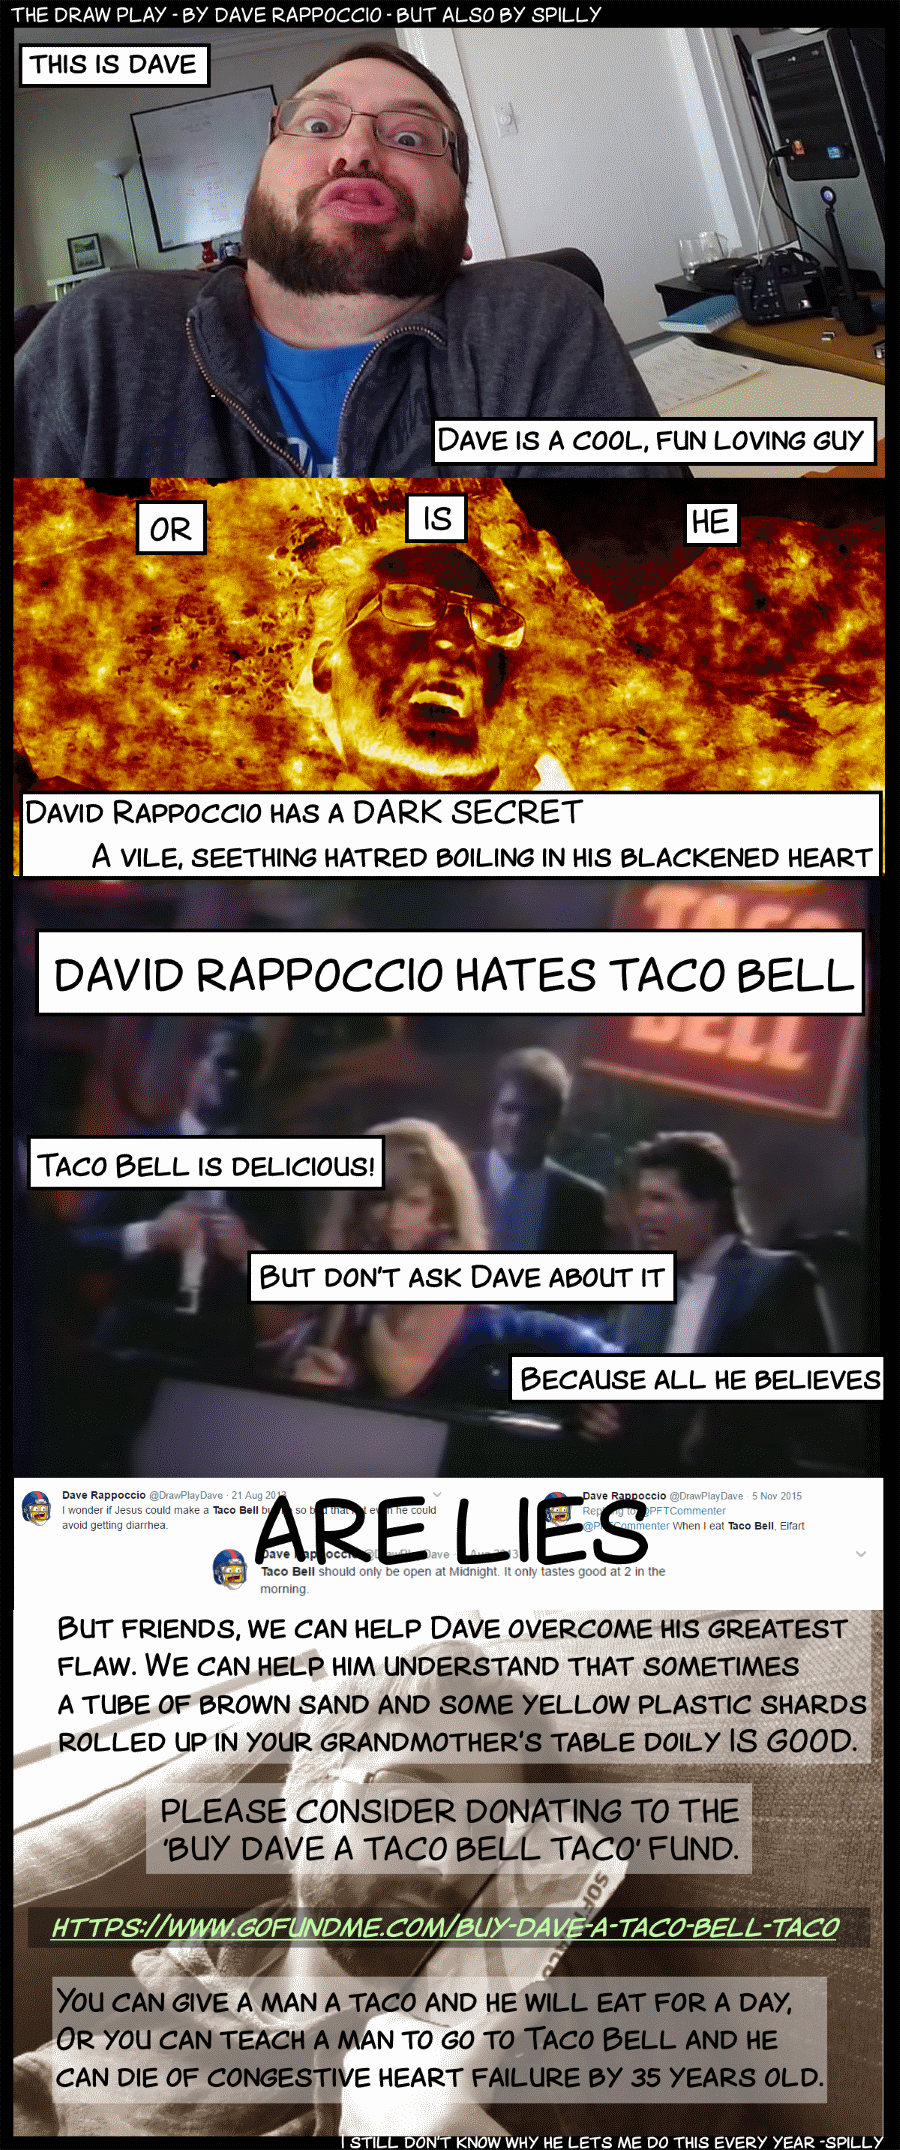 They call it Taco bell because it makes your butt ring